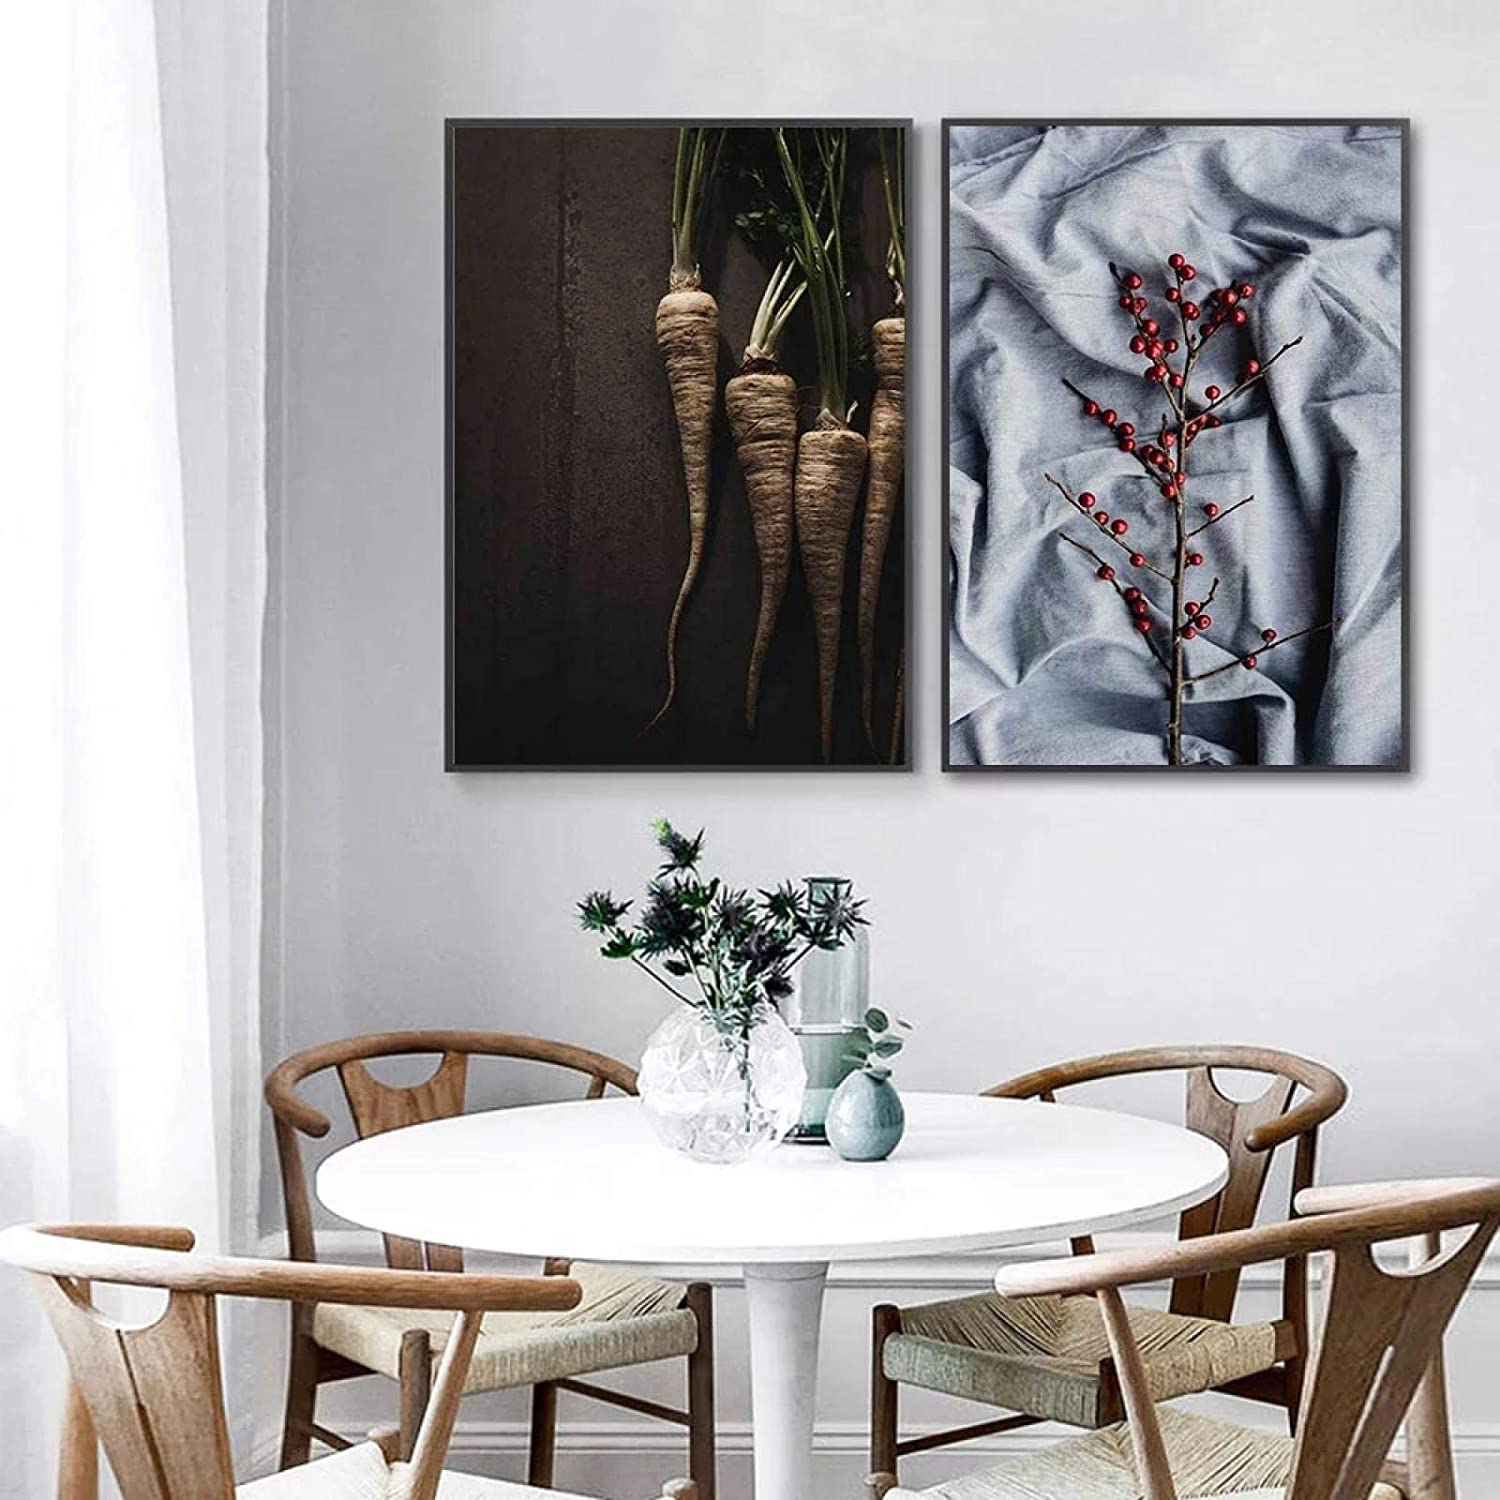 """YQLKC Food Poster Breakfast Canvas Painting Radish and Bread Wall Art Print Nordic Modern Pictures for Kitchen Room Decor 11.8""""x19.6""""(30x50cm) x2 Frameless"""